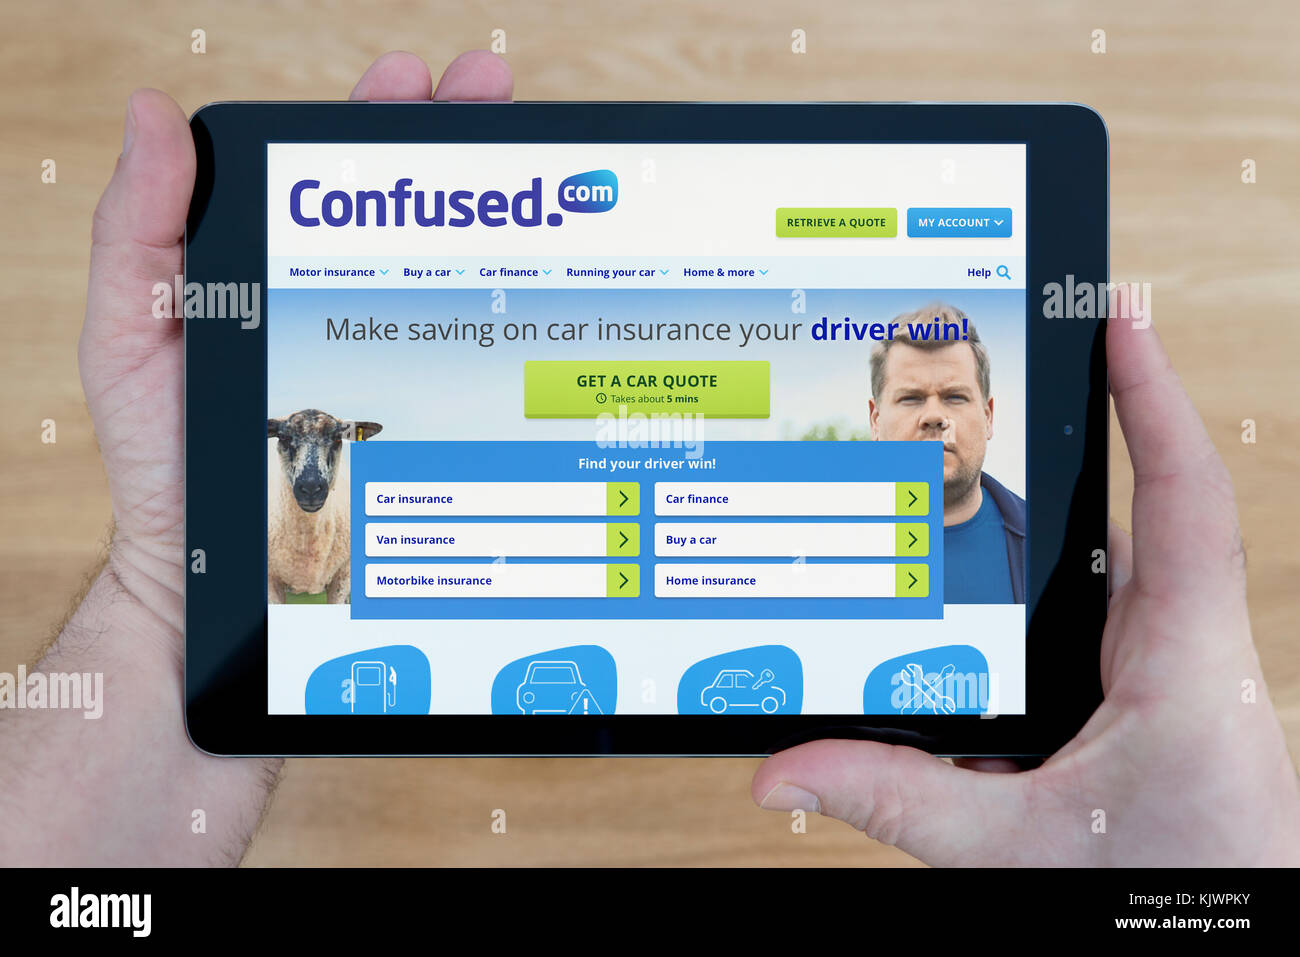 A man looks at the confused.com website on his iPad tablet device, shot against a wooden table top background (Editorial - Stock Image